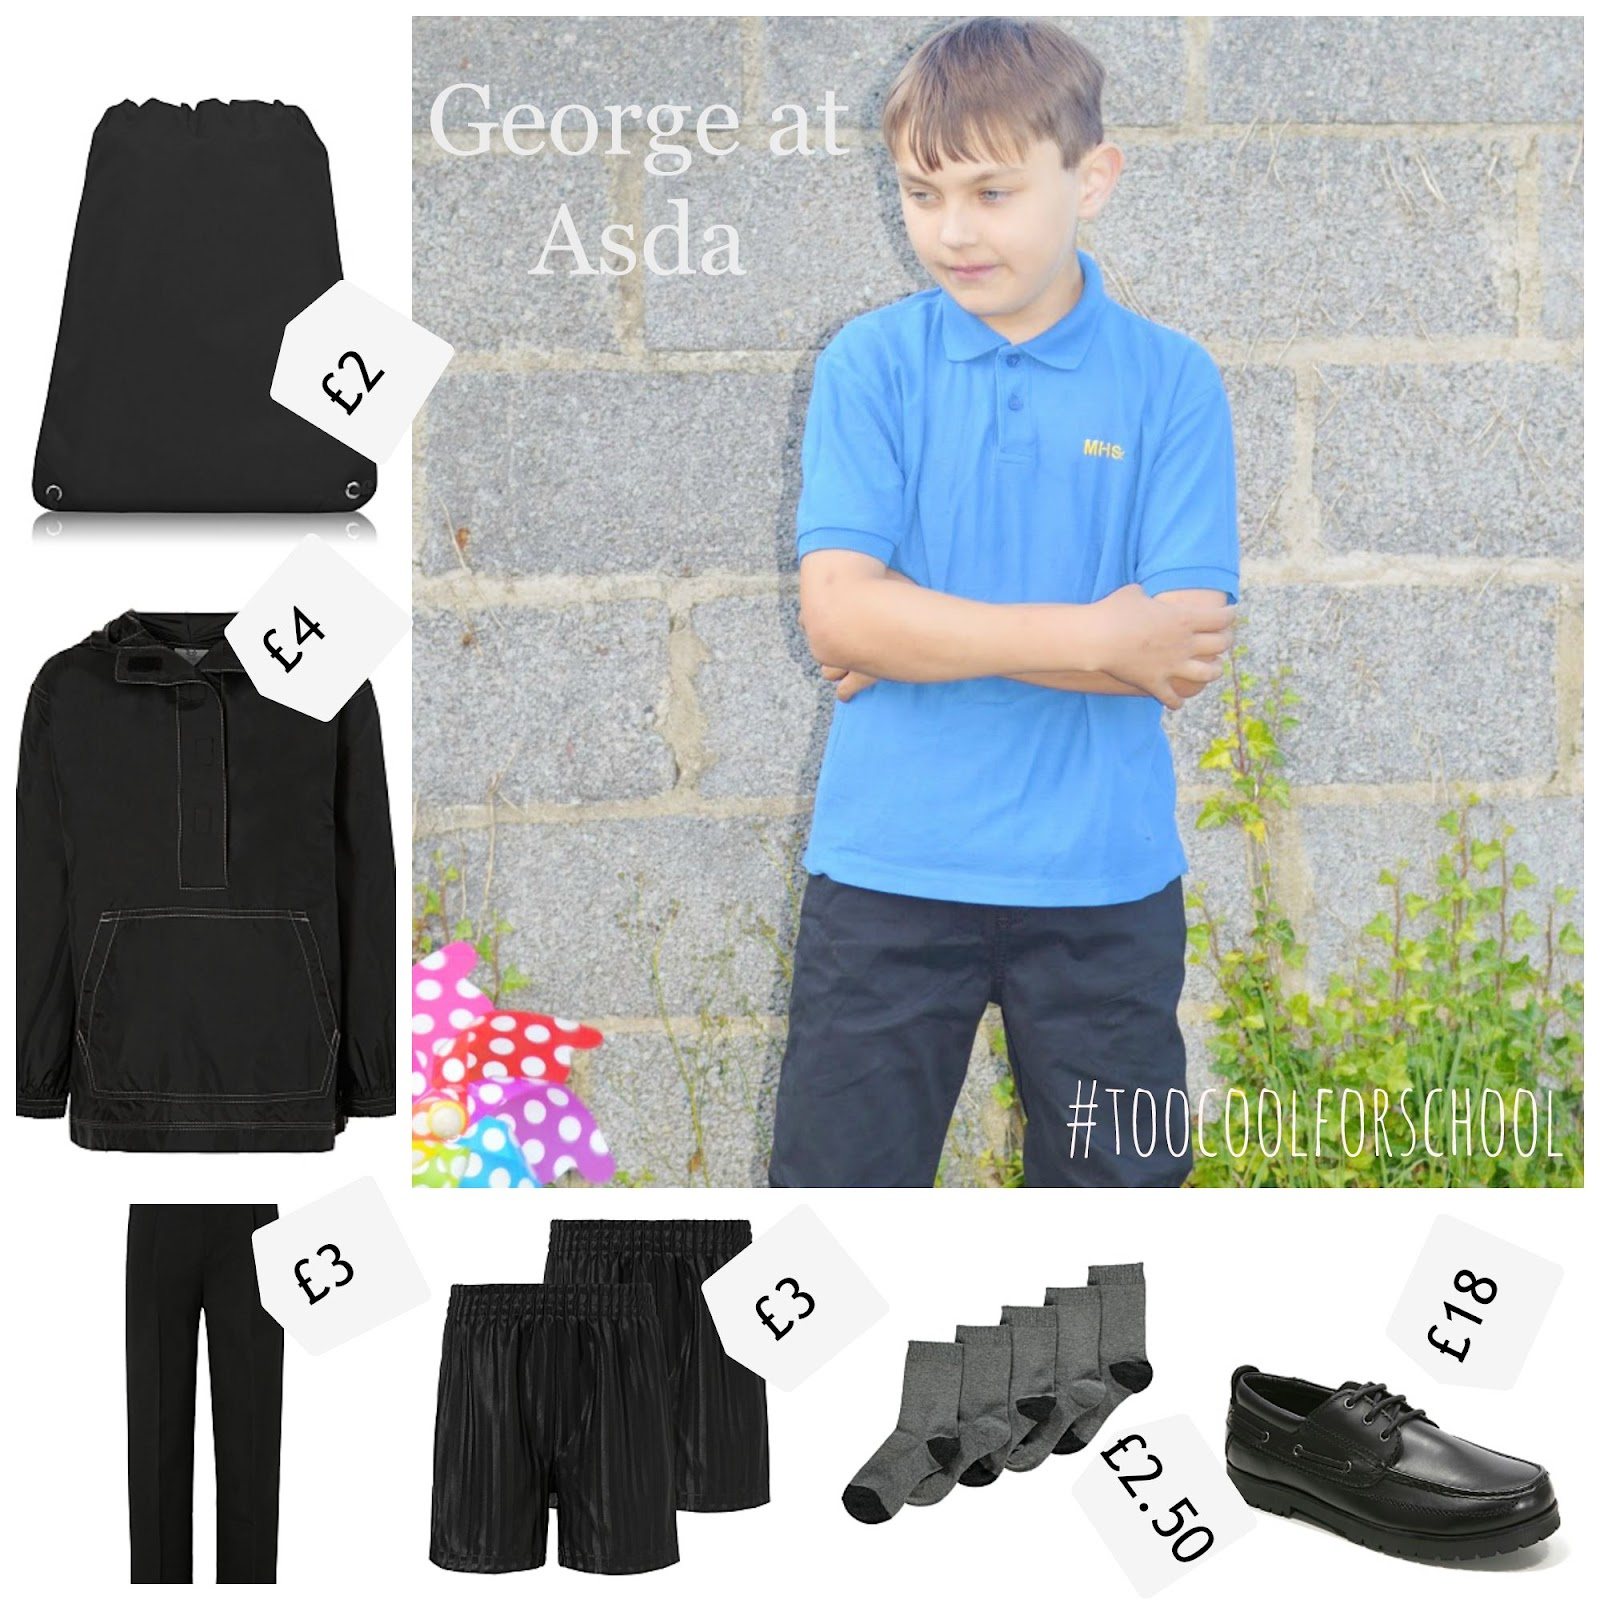 George at Asda School Uniform Boy #toocoolforschool